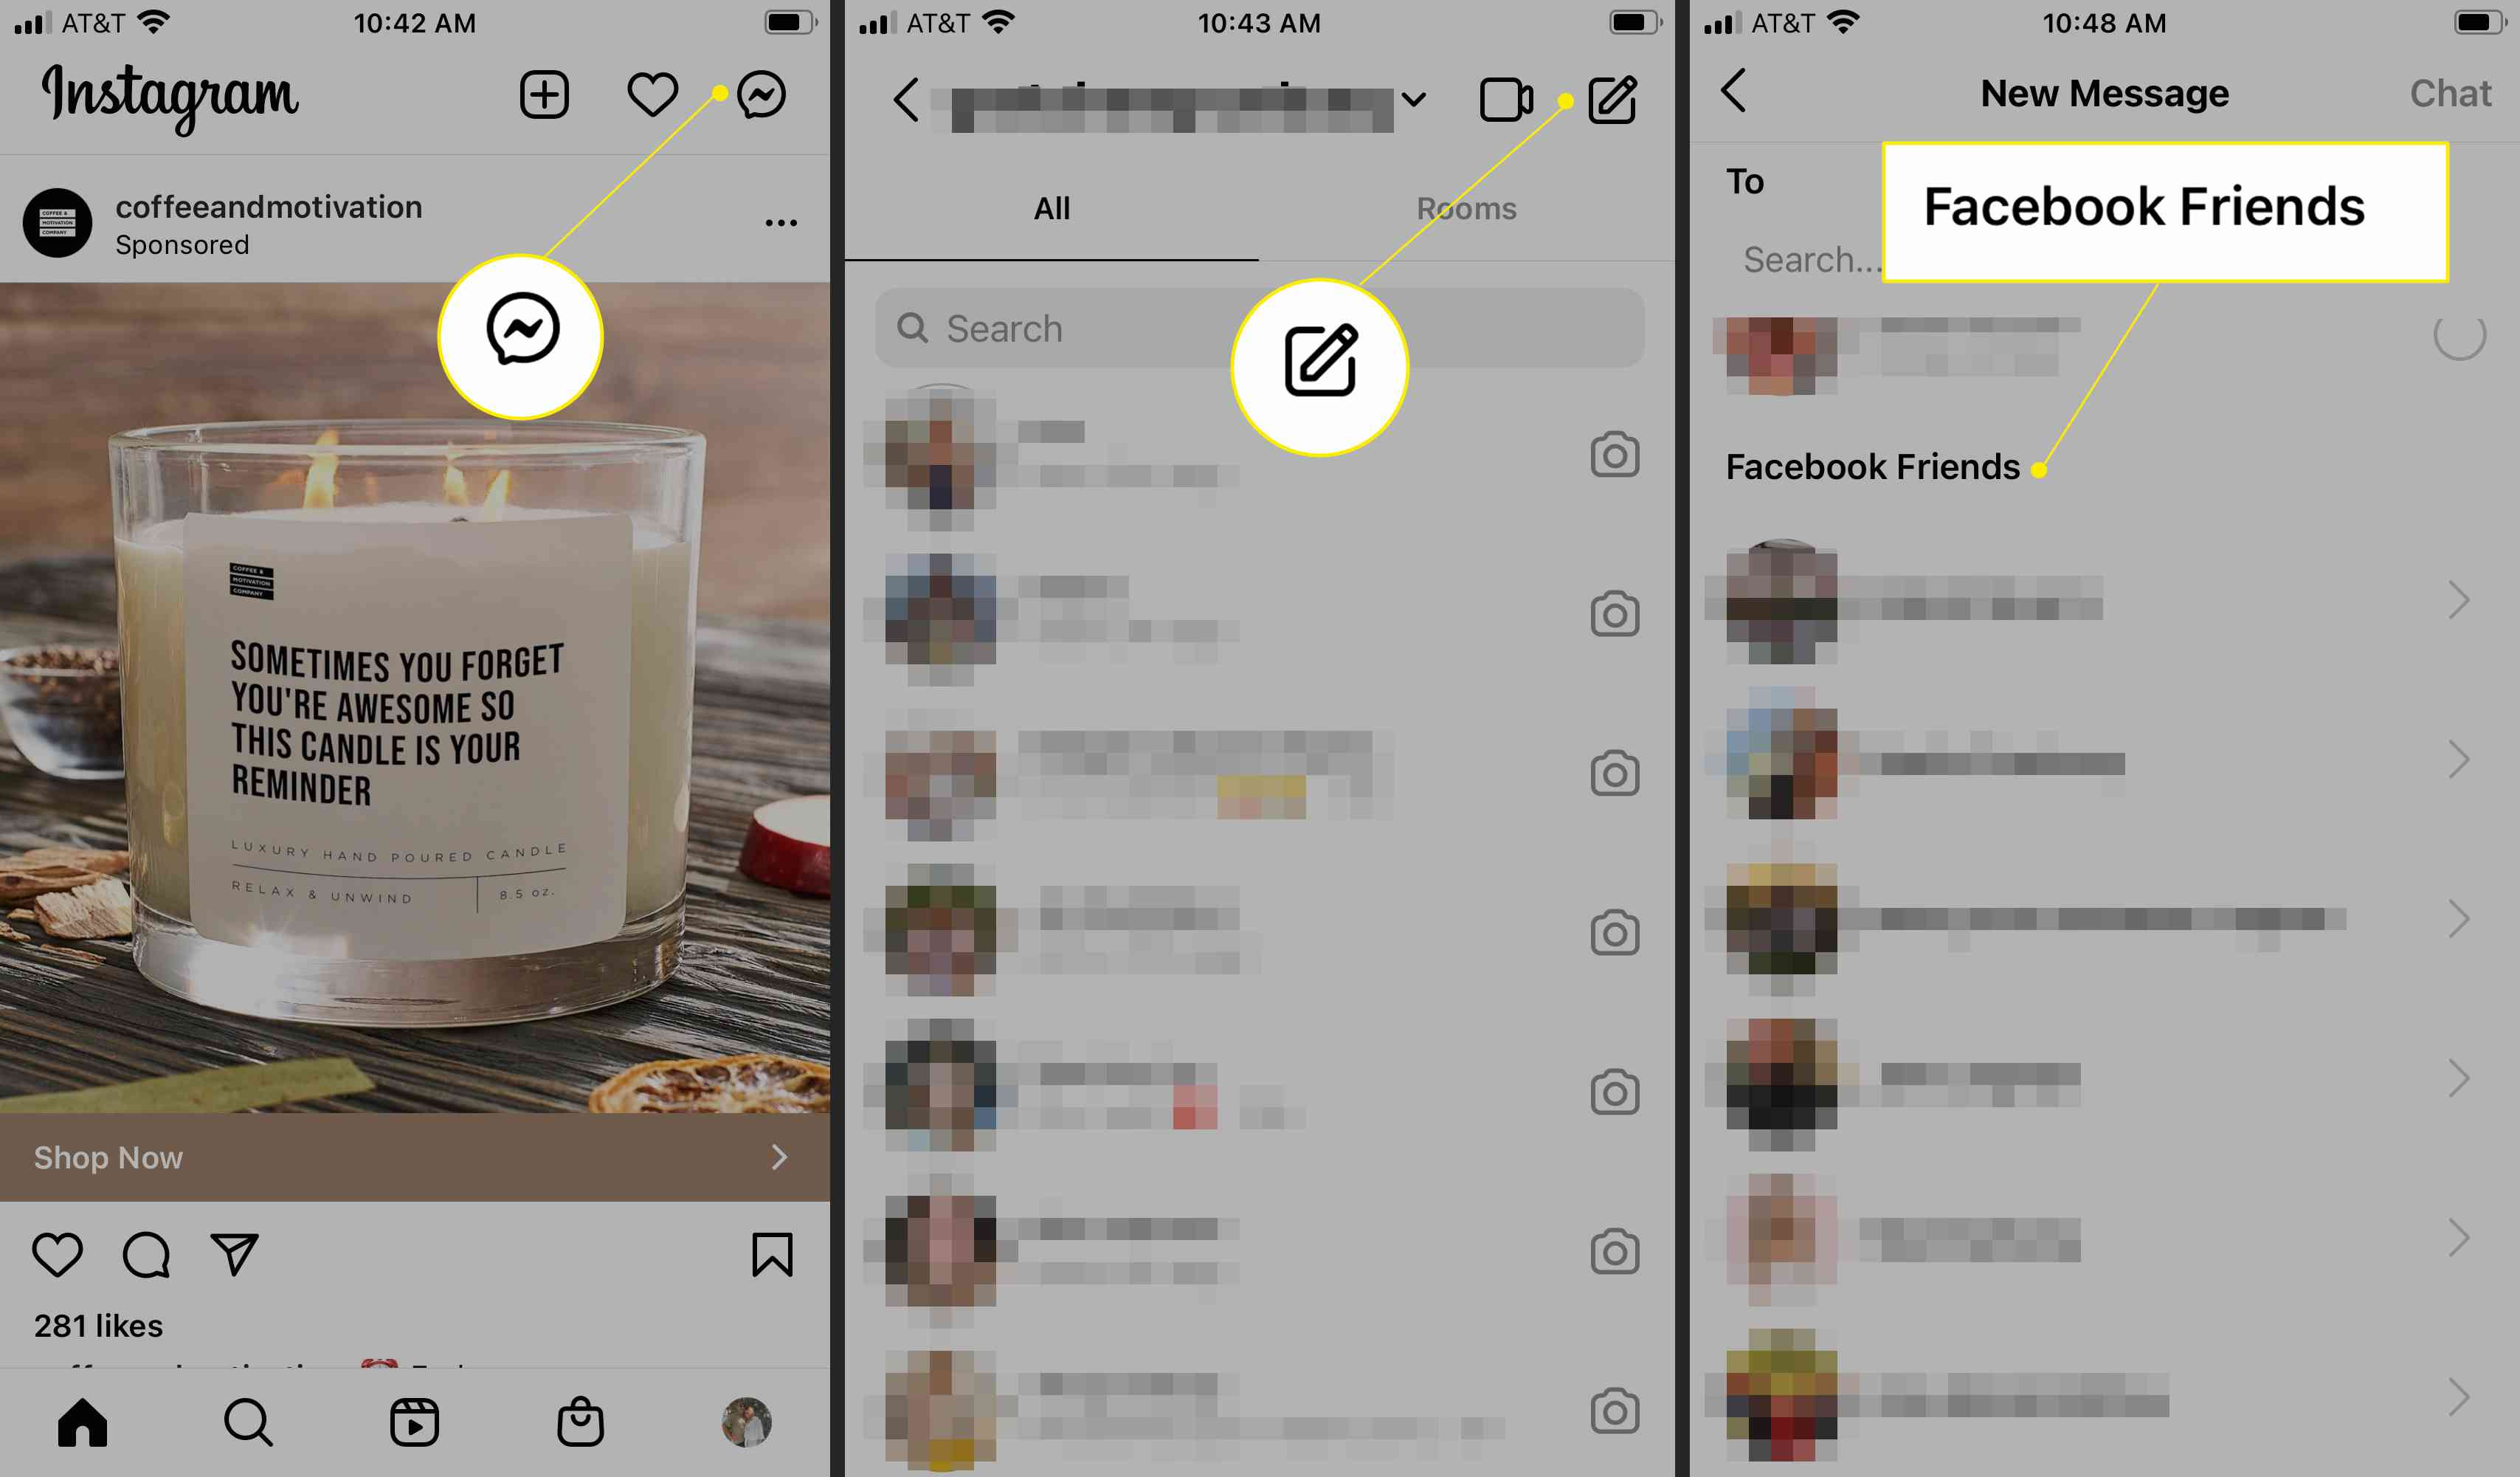 Instagram highlighting the Messenger icon, new message icon, and